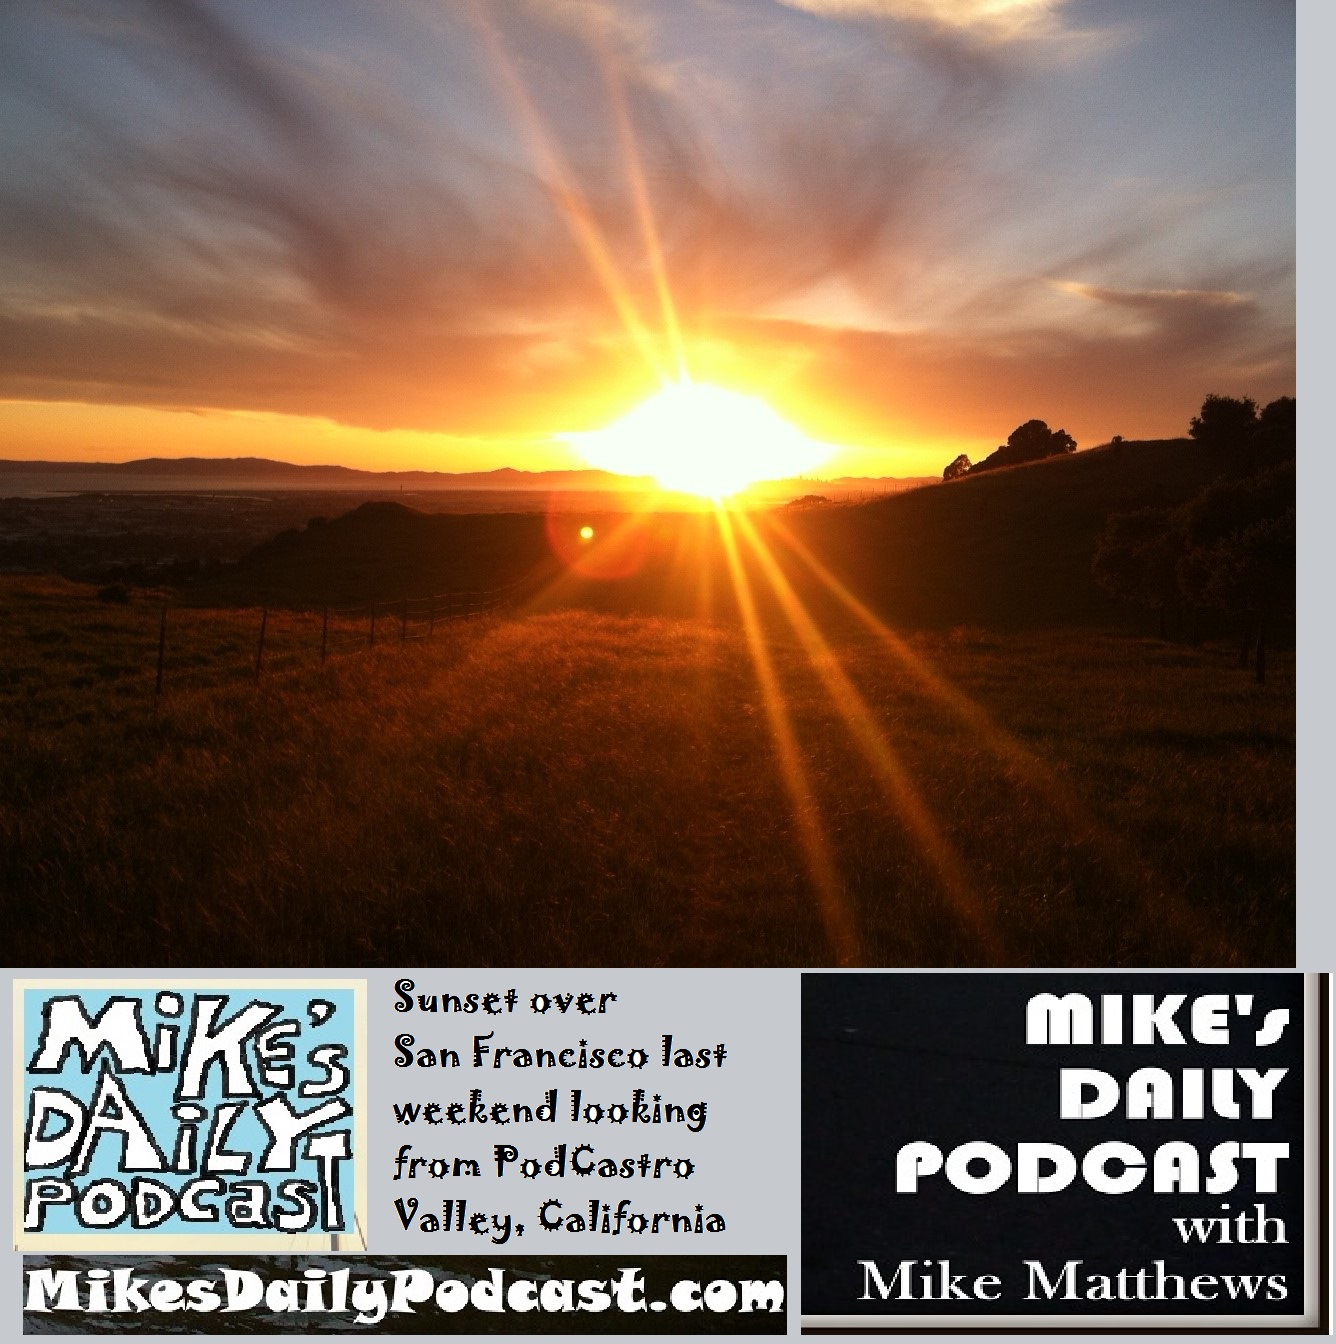 MIKEs DAILY PODCAST 1076 San Francisco sunset